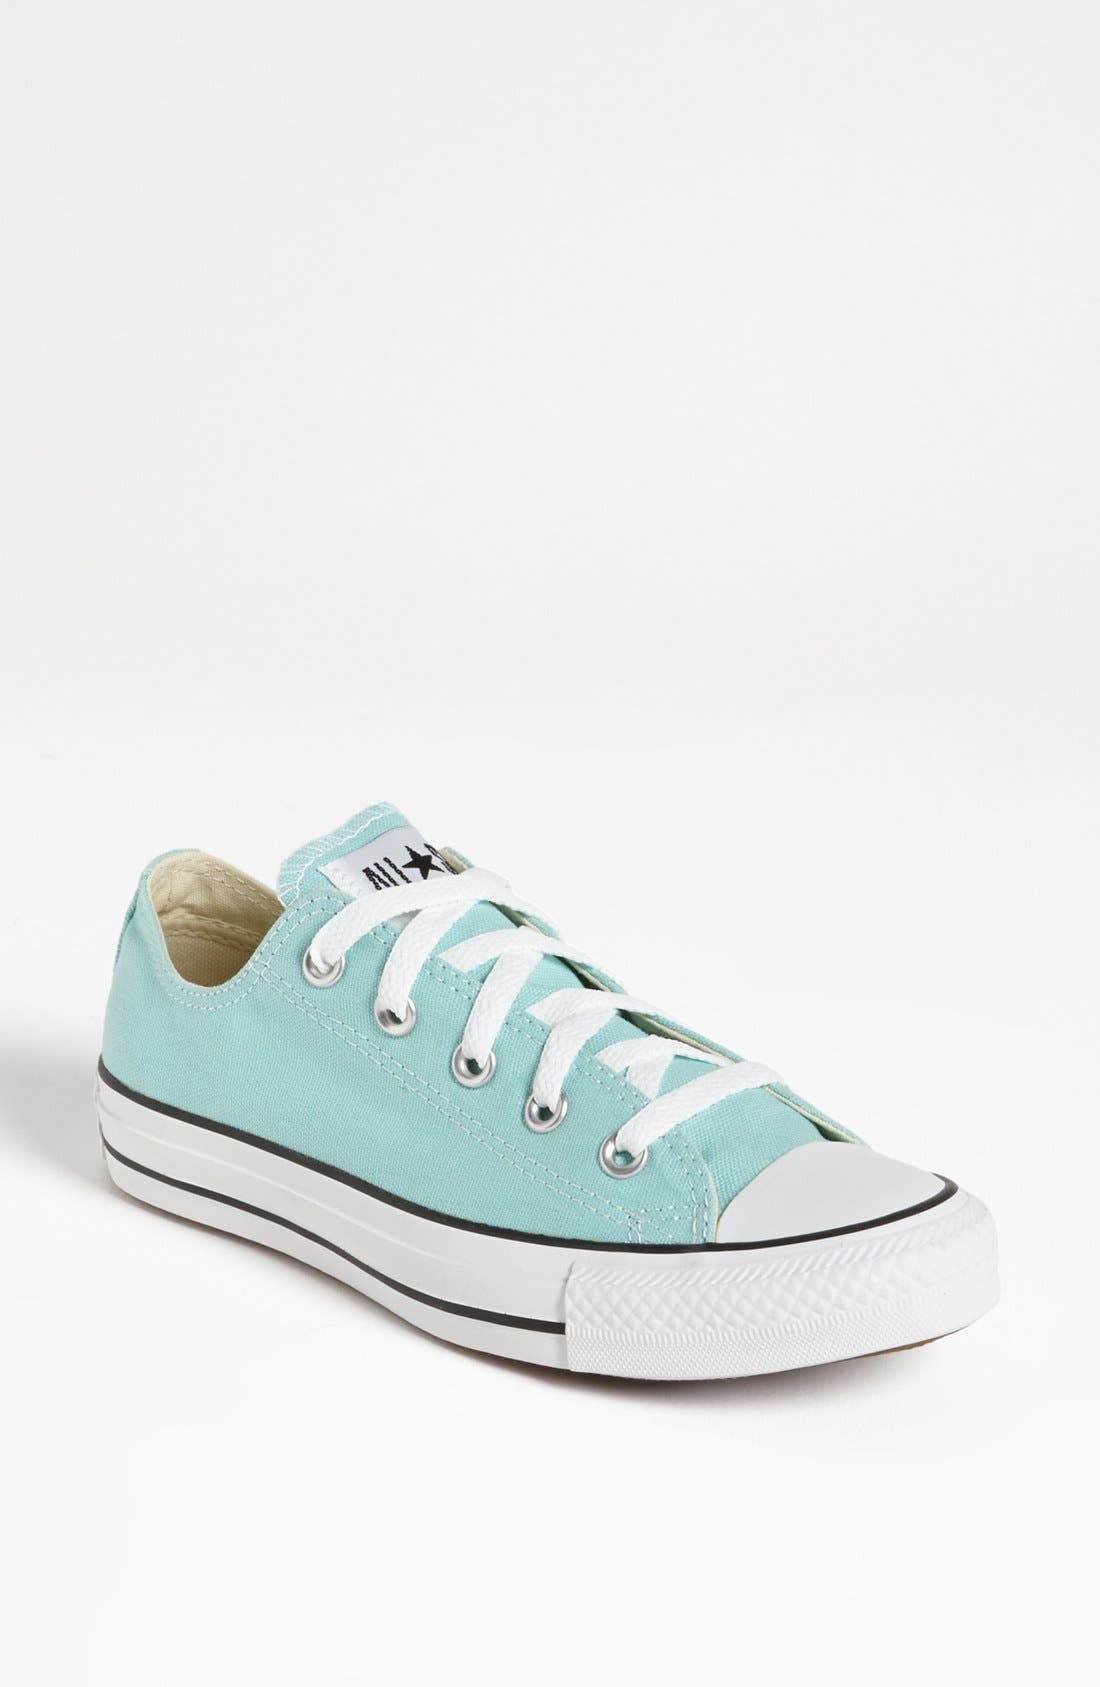 Alternate Image 1 Selected - Converse Chuck Taylor® Low Sneaker (Women)